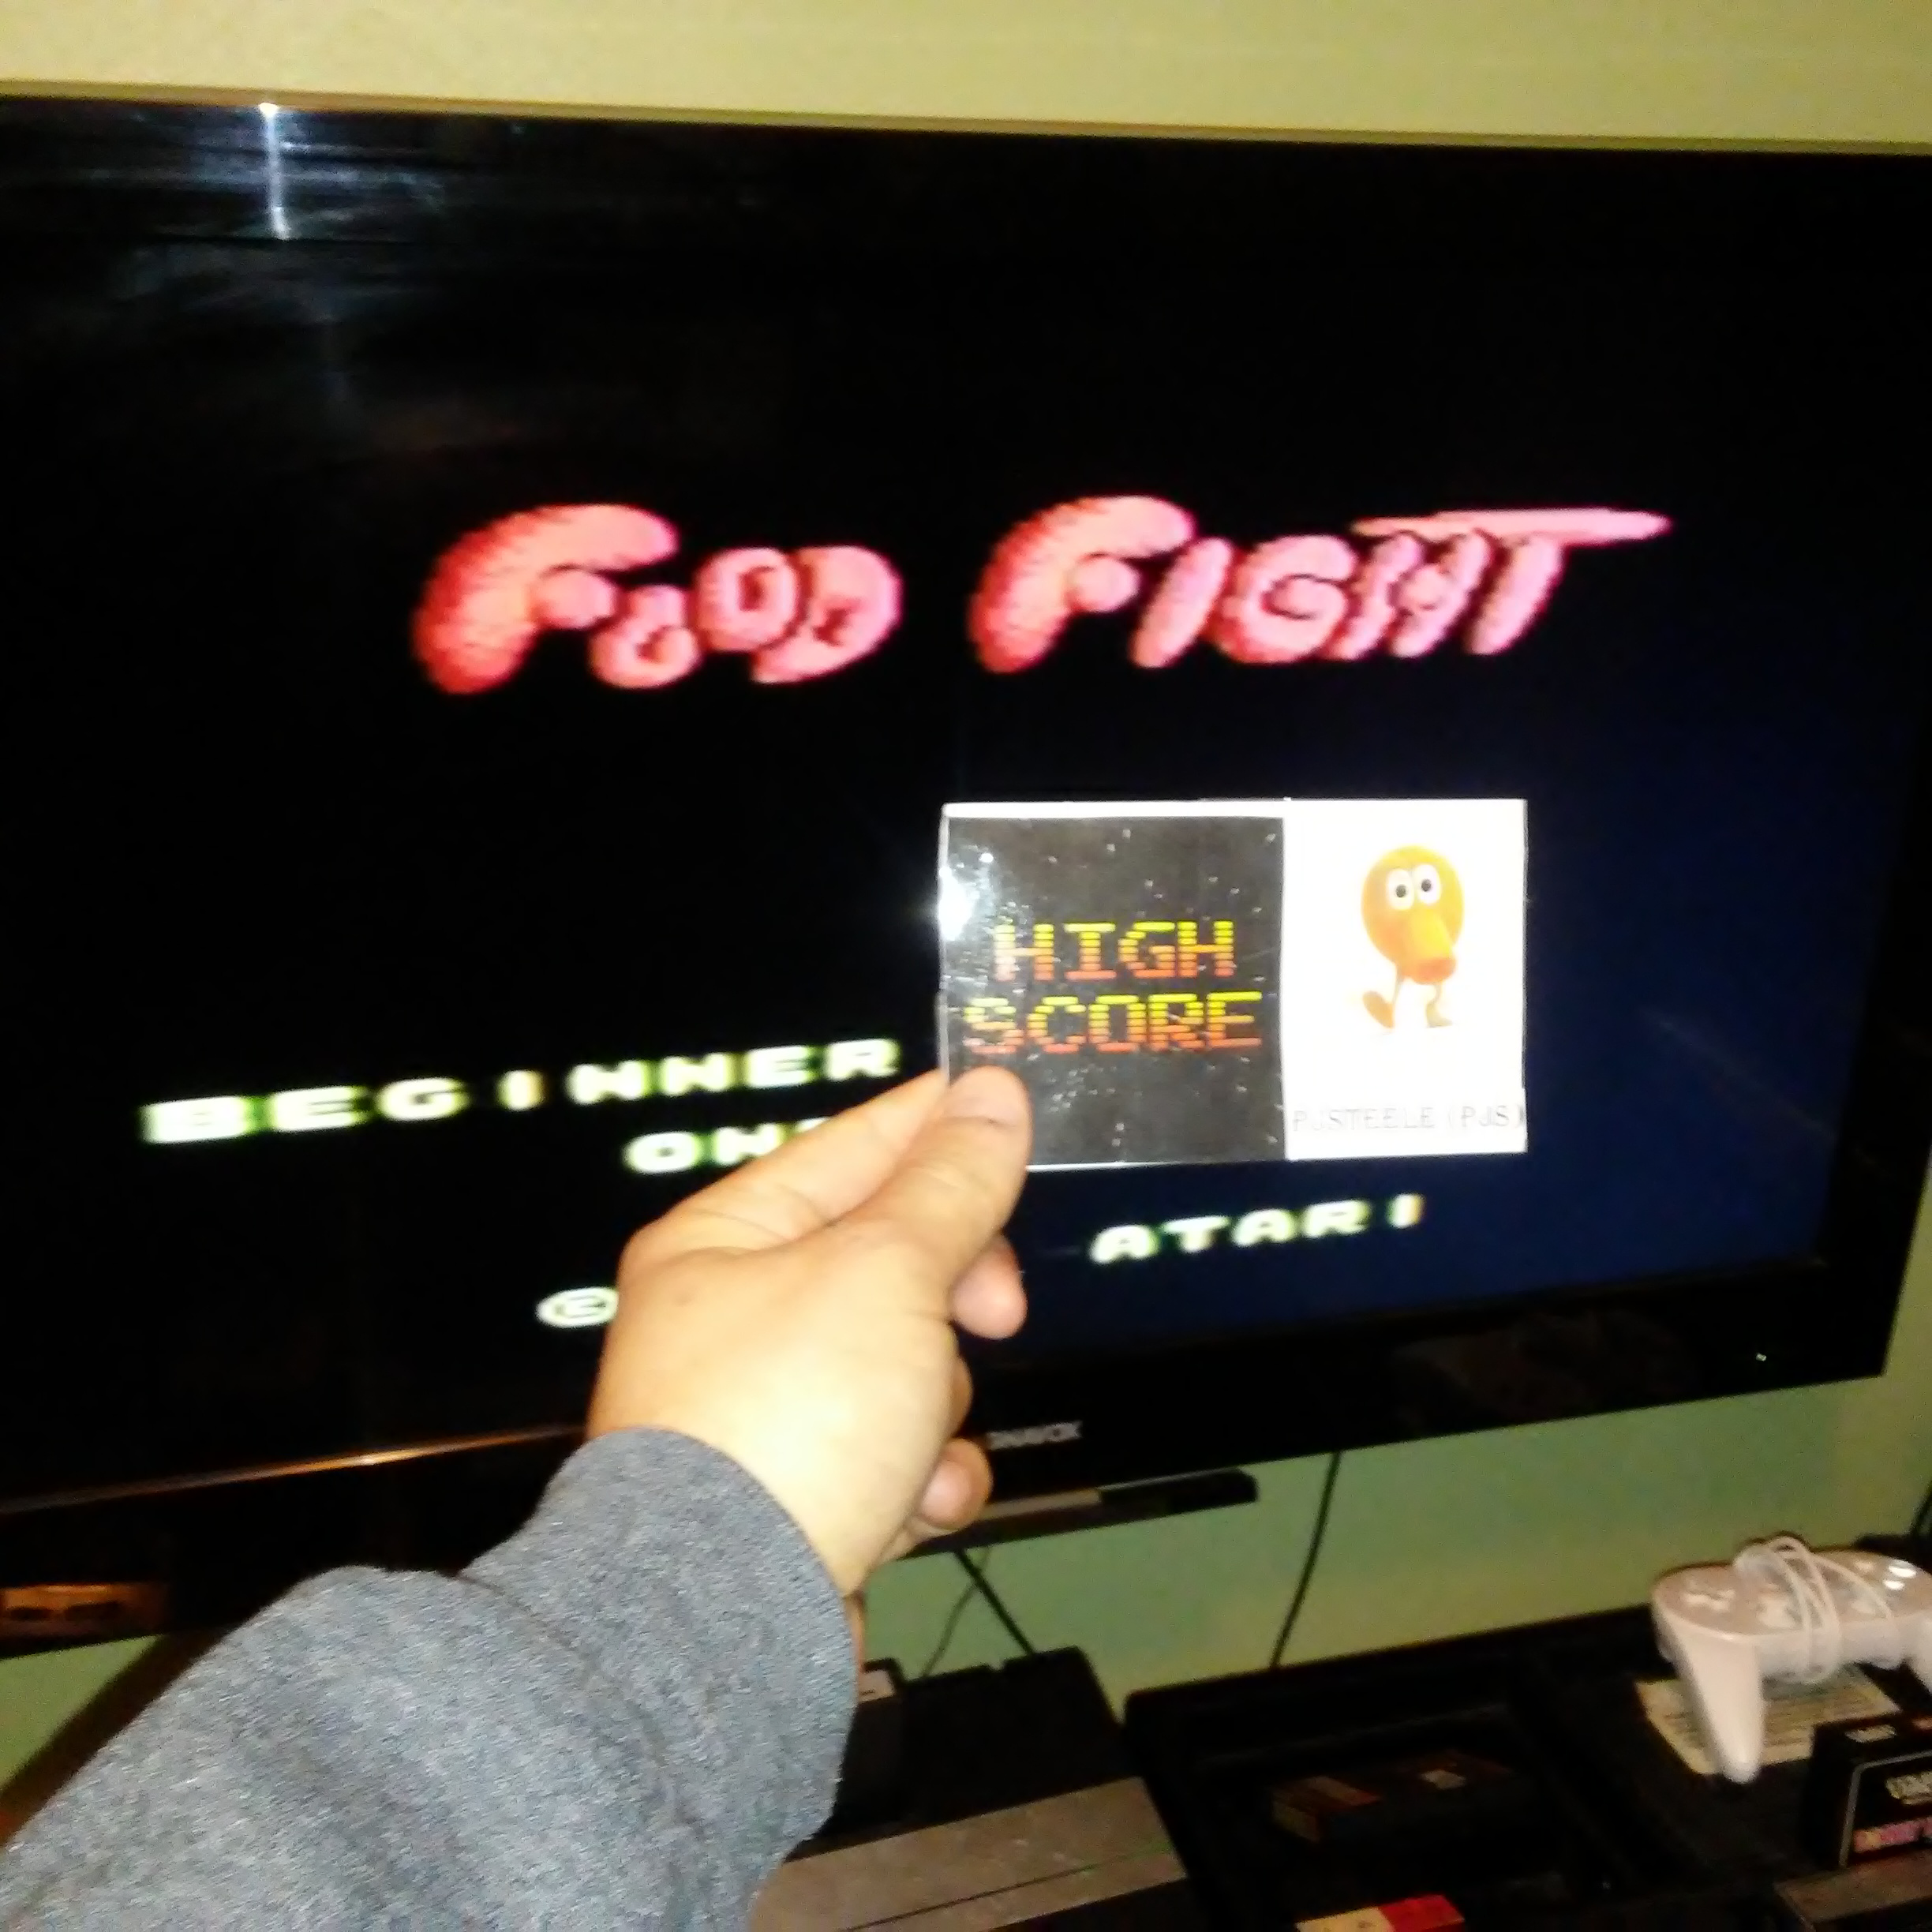 Food Fight: Beginner 8,010,200 points